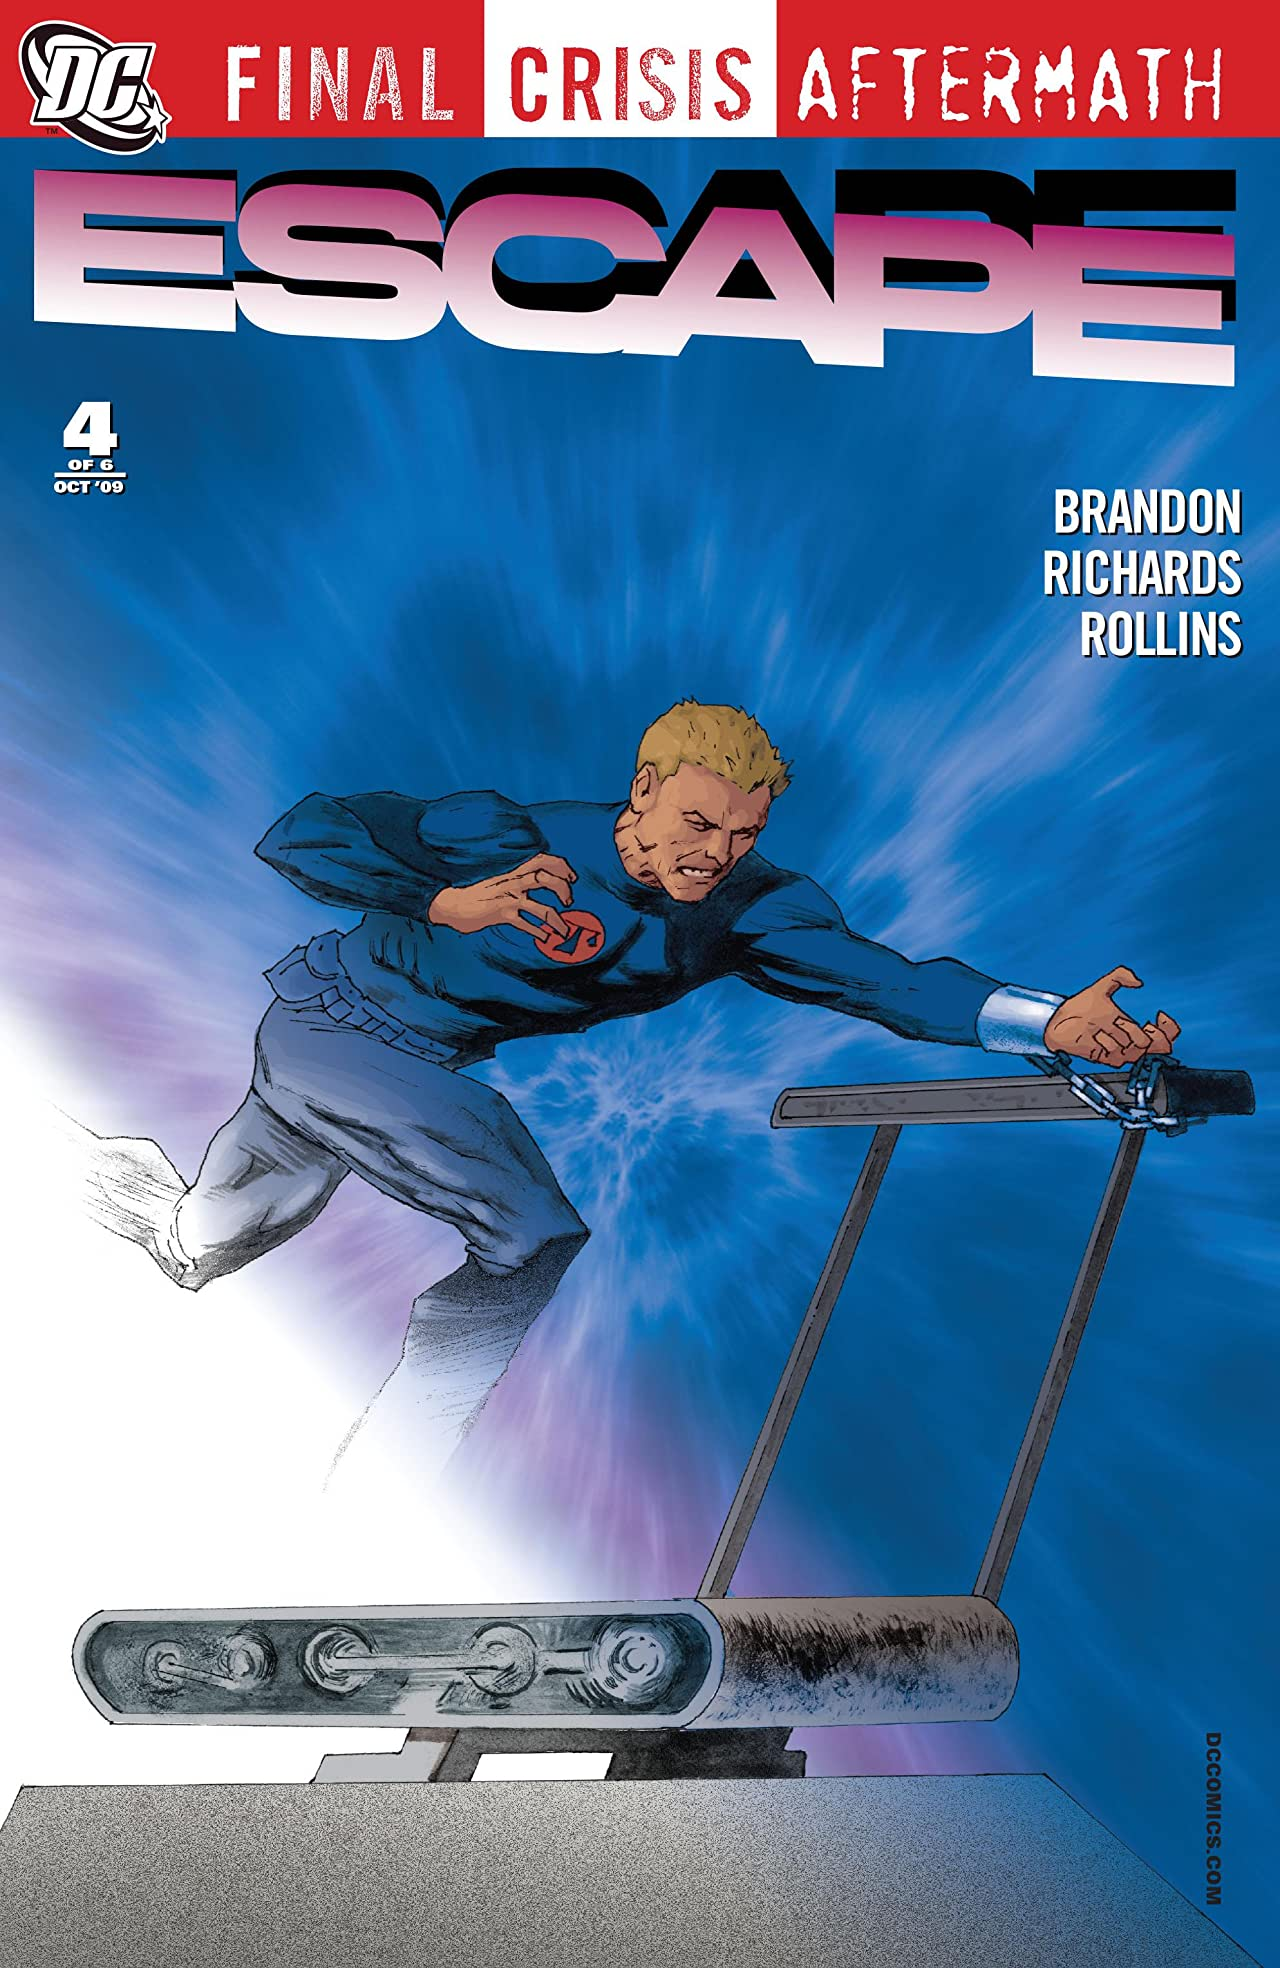 Final Crisis Aftermath: Escape (2009) #4